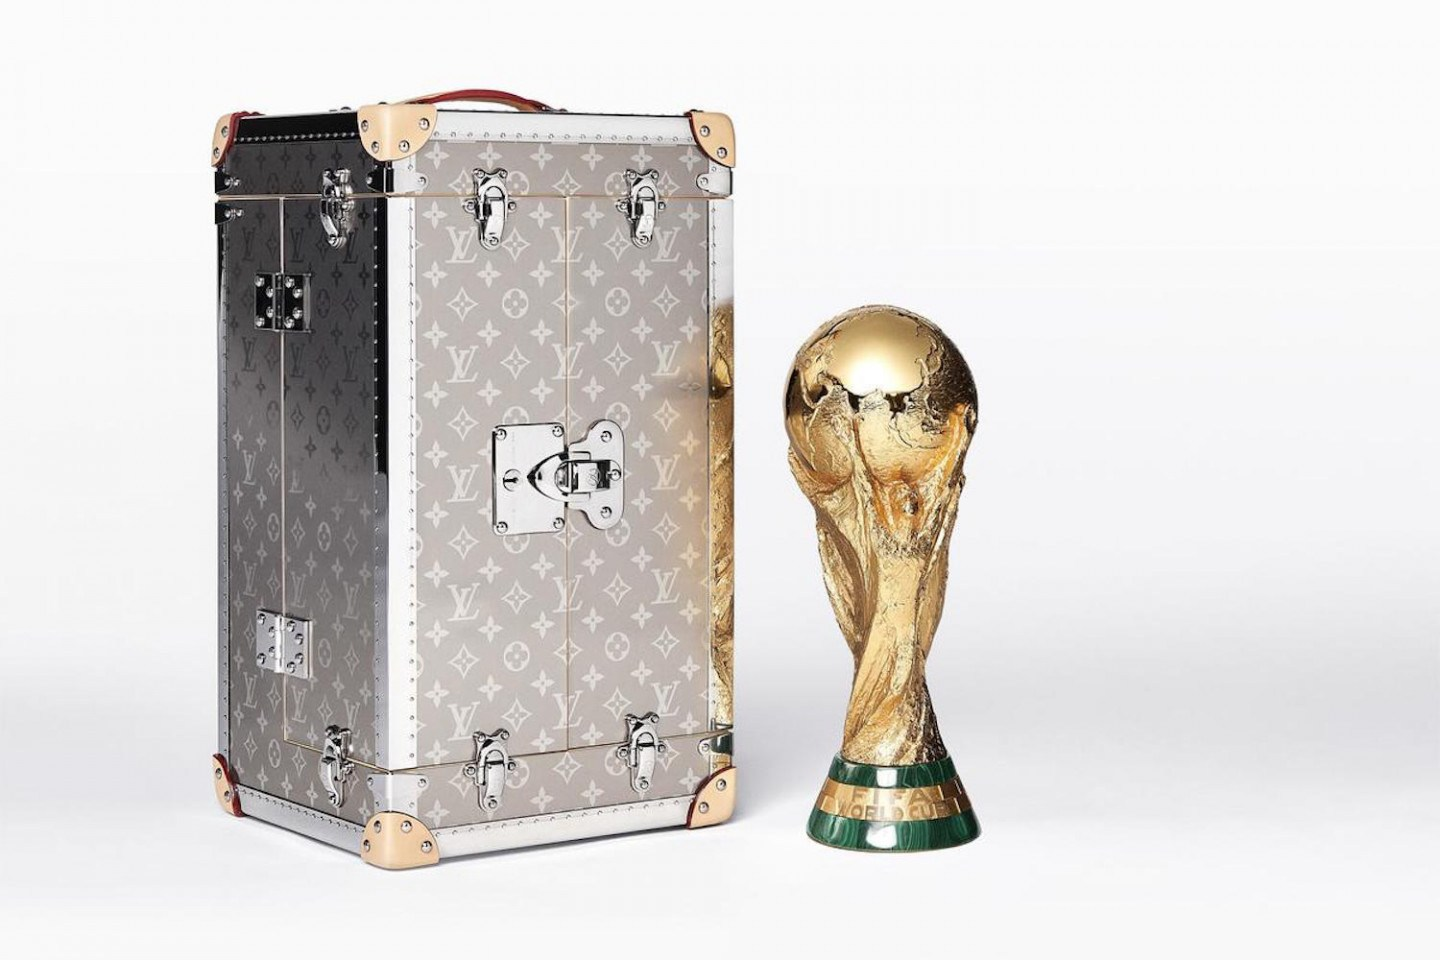 louis-vuitton-fifa-world-cup-original-trophy-travel-case-01-1440x960